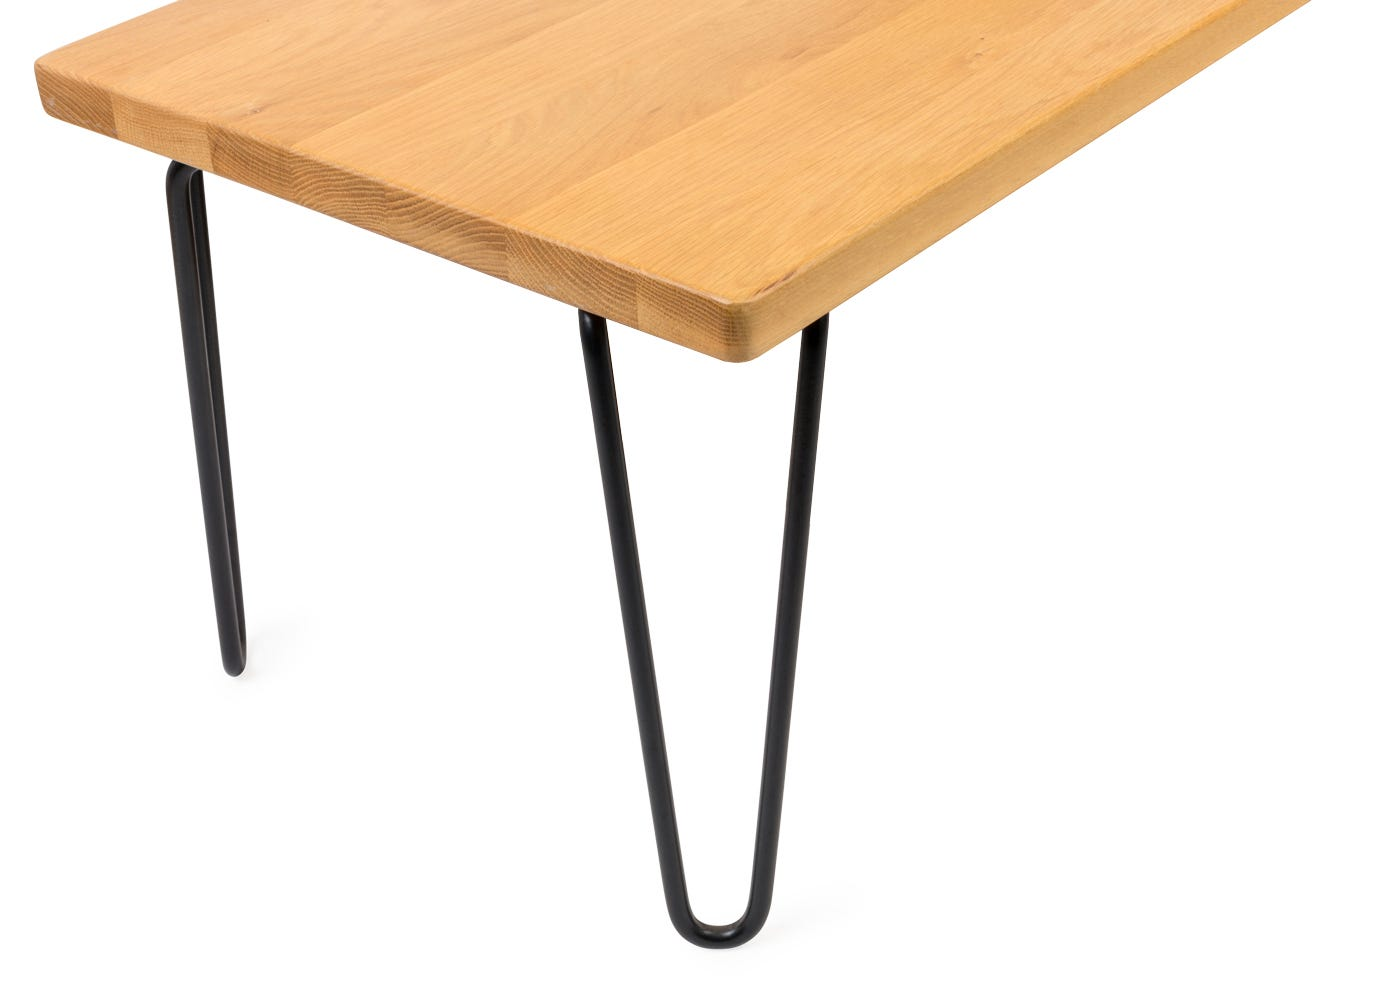 Brunel Coffee Table - Detail View